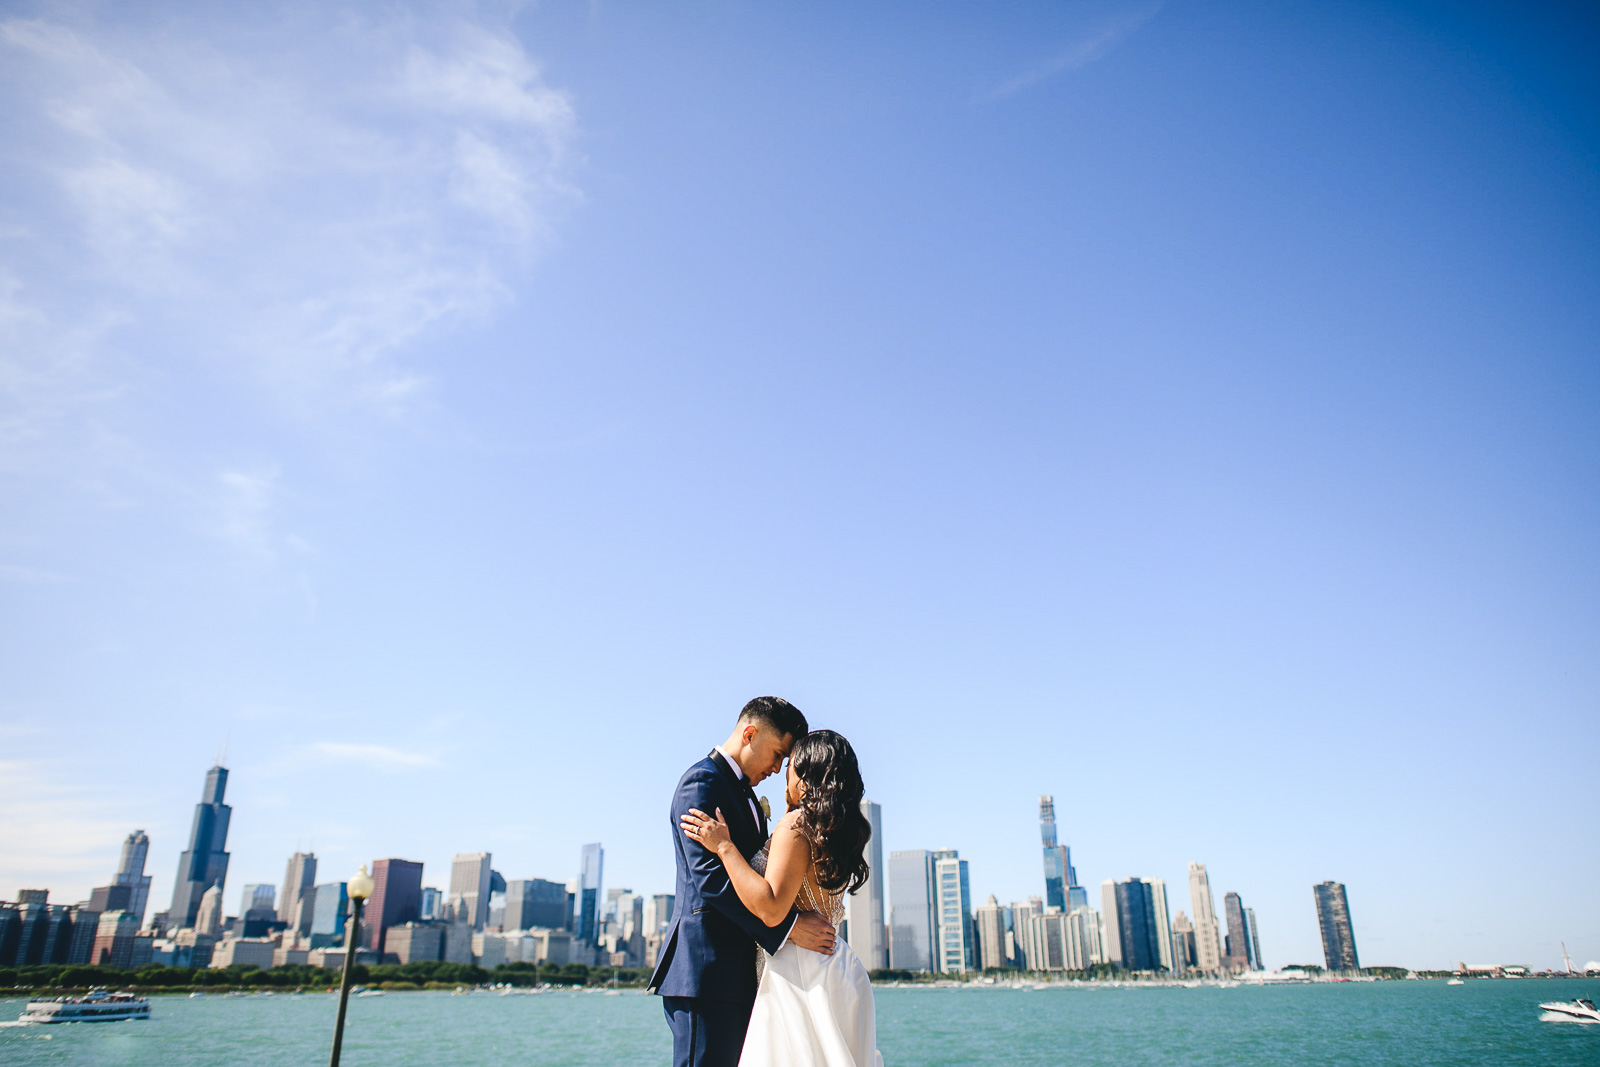 49 renaissance hotel chicago wedding photos - Renaissance Hotel Chicago Wedding Photos // Francine + RJ